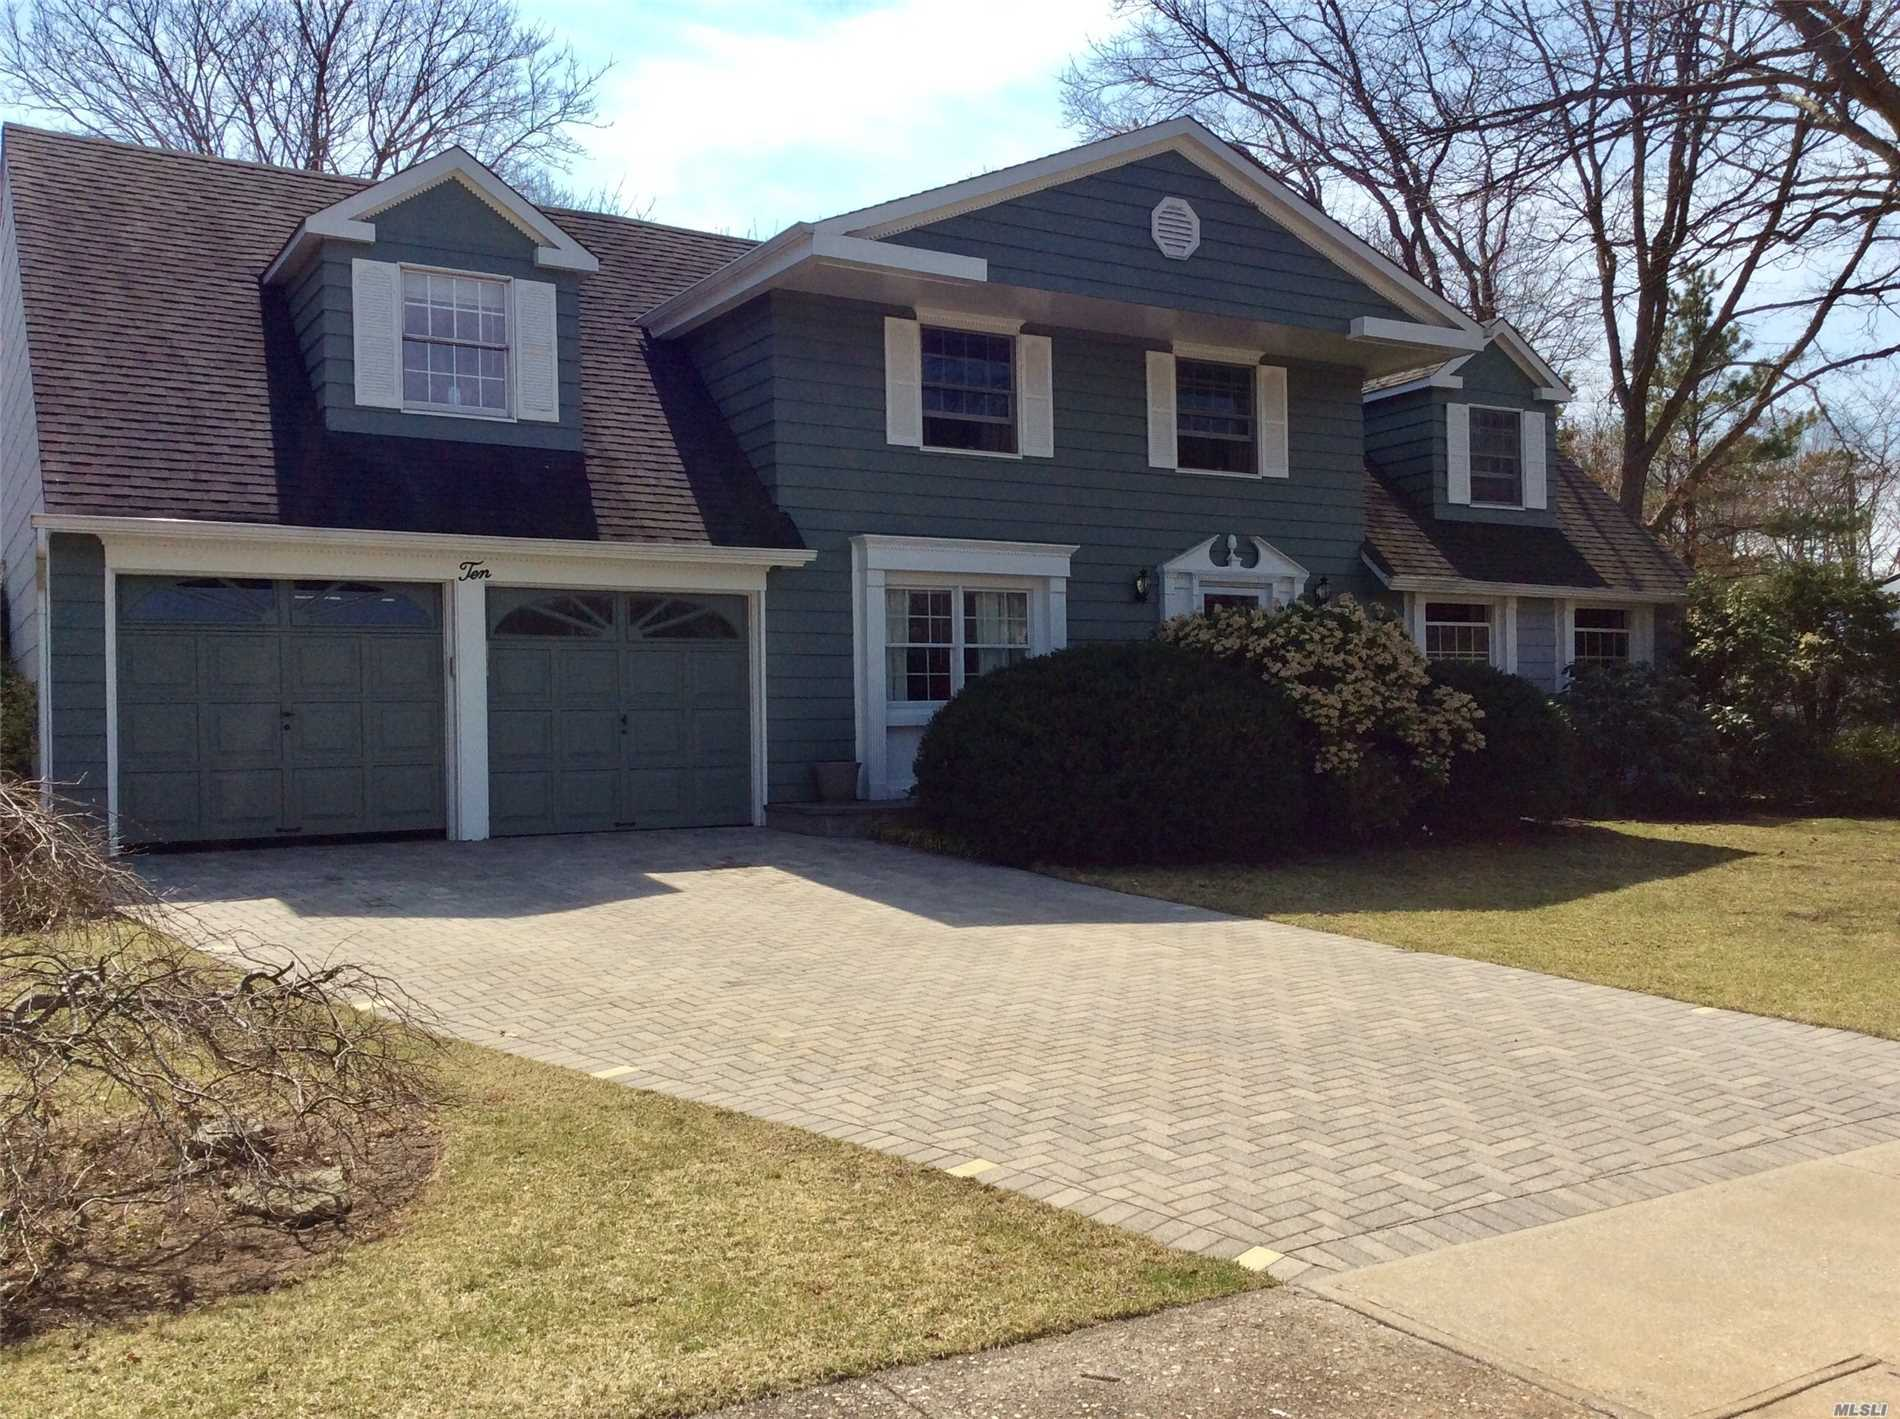 Beautifully appointed 4/5 bedroom center hall Colonial boast expansive size principal rooms, open floor plan, wood flooring throughout entire home, custom moldings, freshly painted , Huge family room with wood burning fireplace, 2 car garage, Bsmt situated on a cul-de-sac & much more.